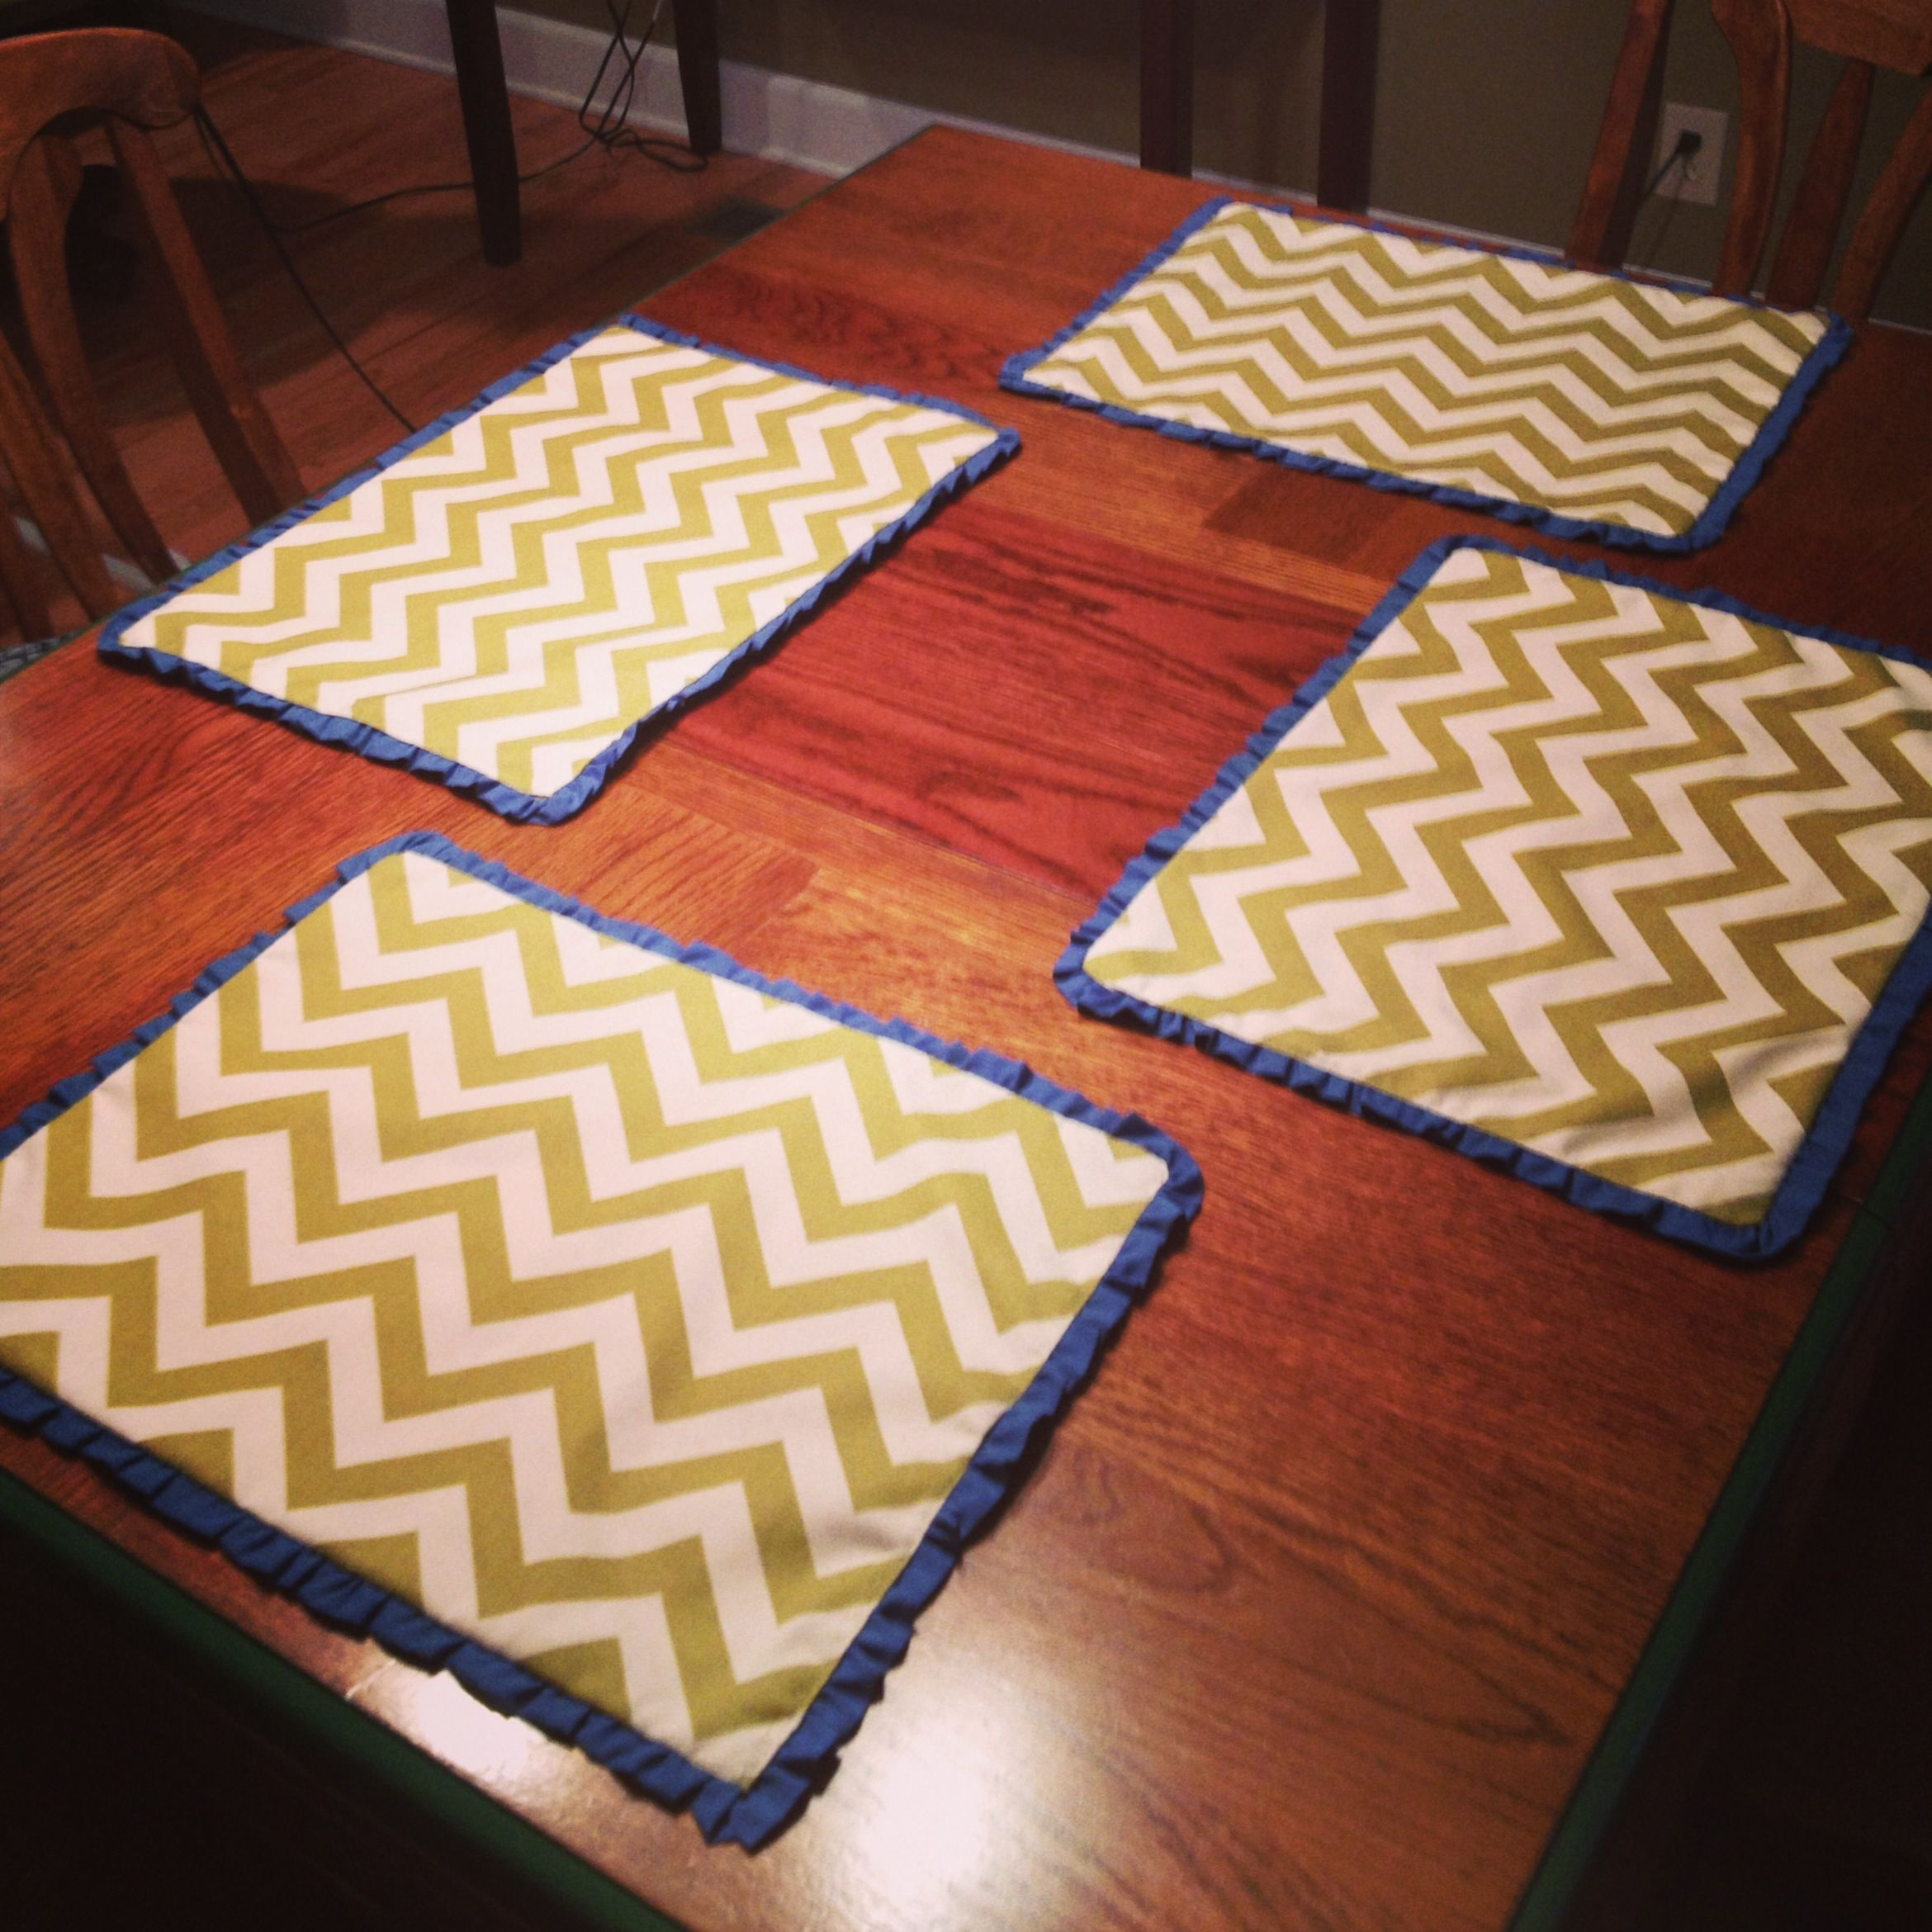 Homemade Chevron Placemats Sewn From Duck Cloth From Hobby Lobby Crafty Projects Fabric Baskets Duck Cloth